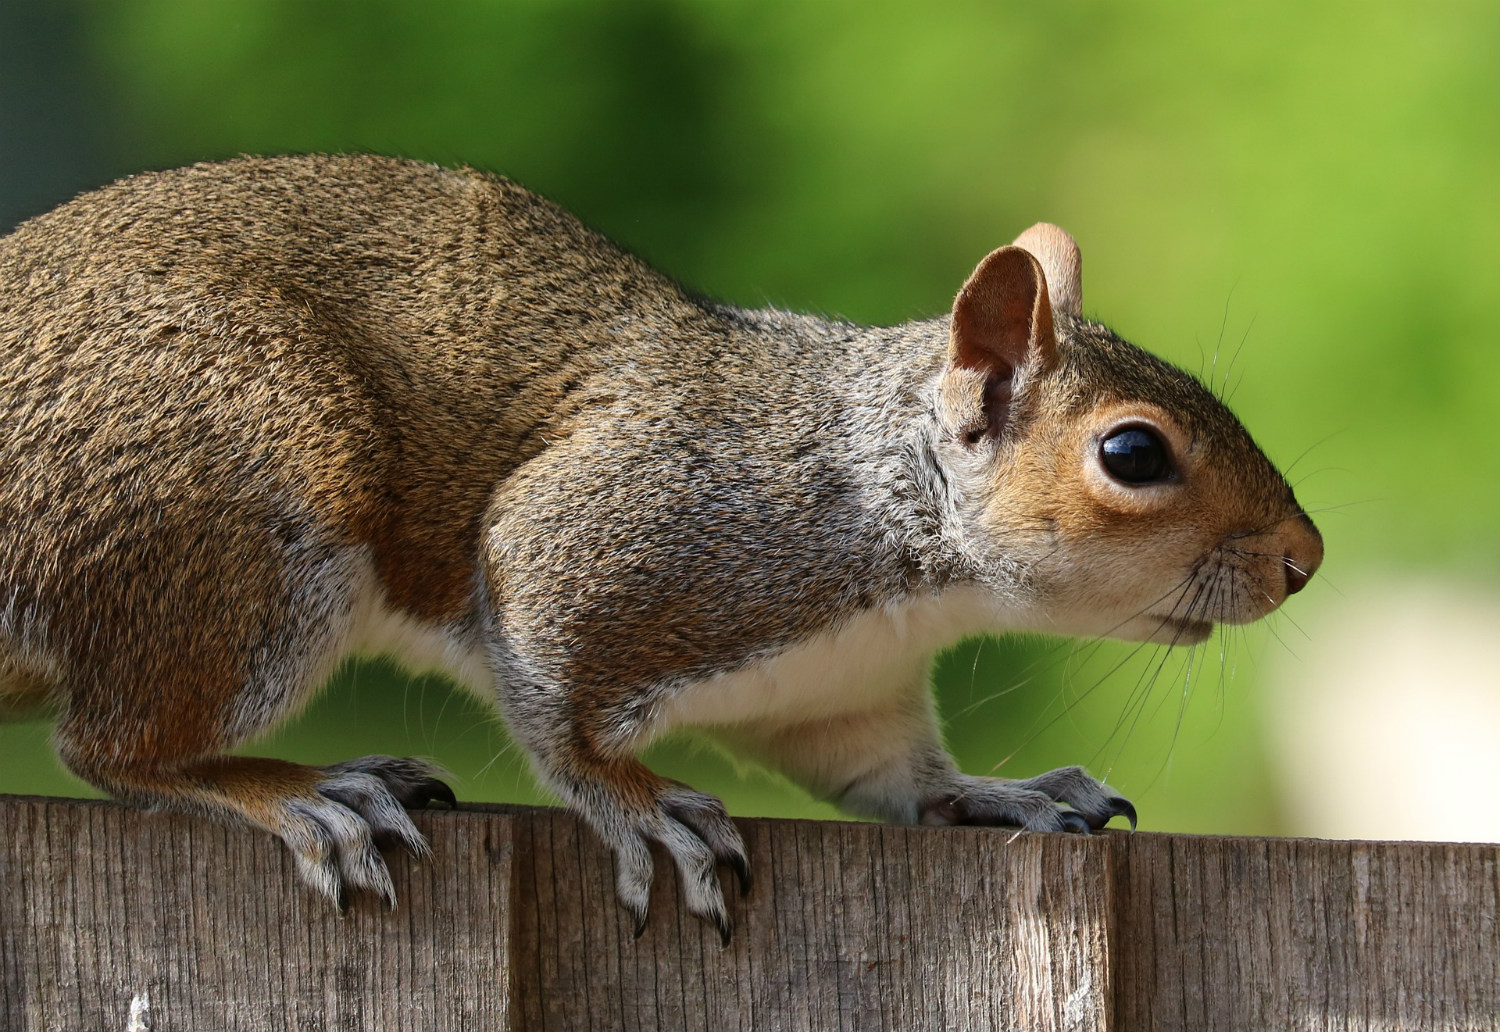 Squirrel on fence, by jLasWilson,  pixabay.com